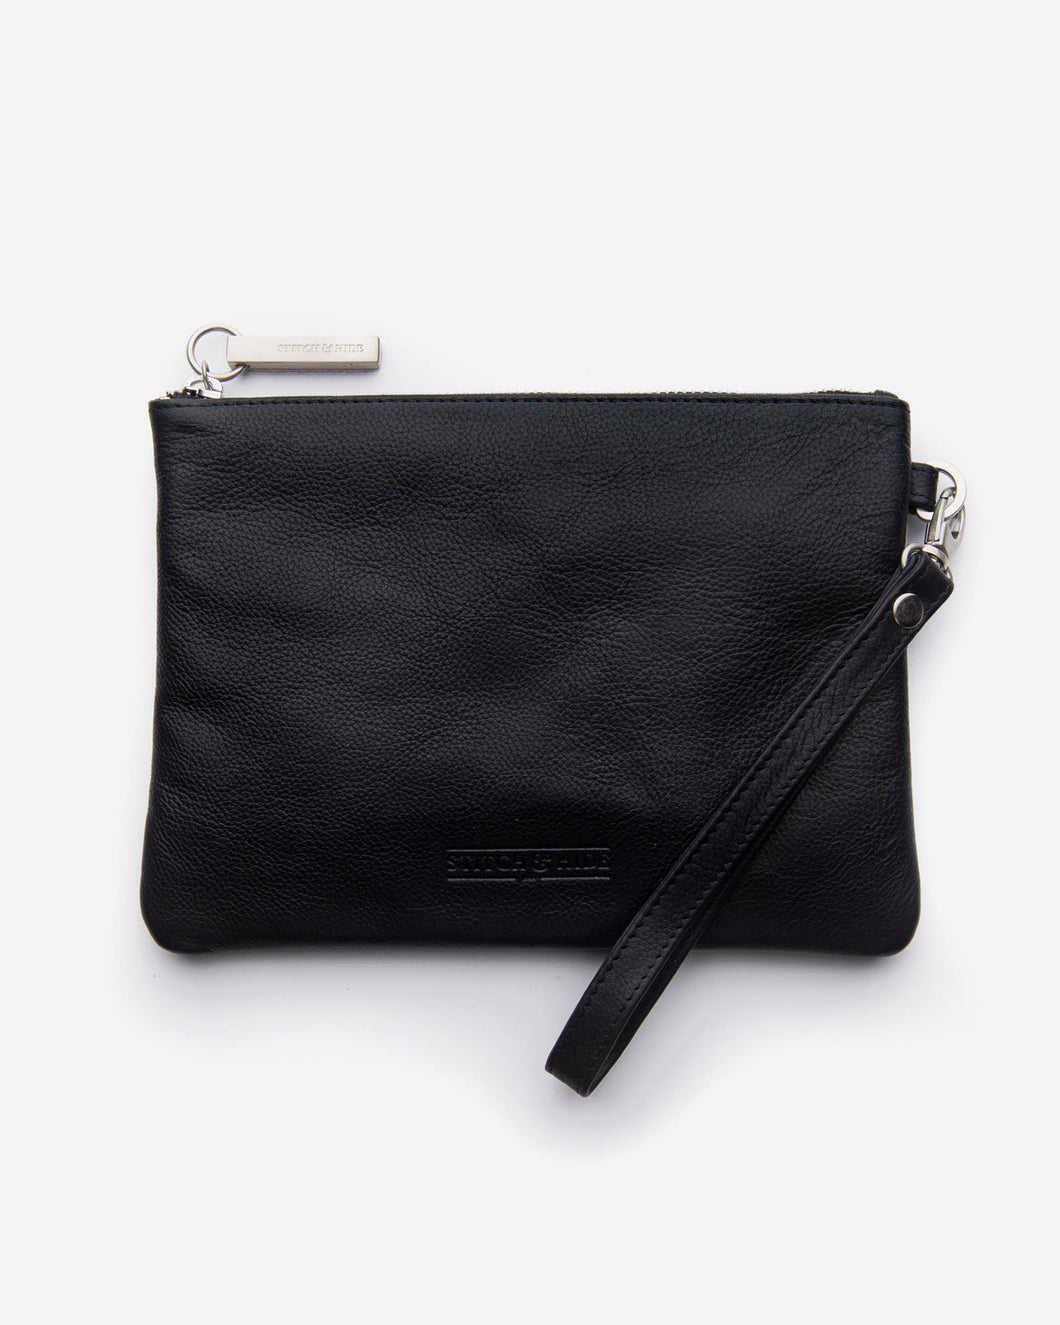 Stitch & Hide - Cassie Clutch - Black